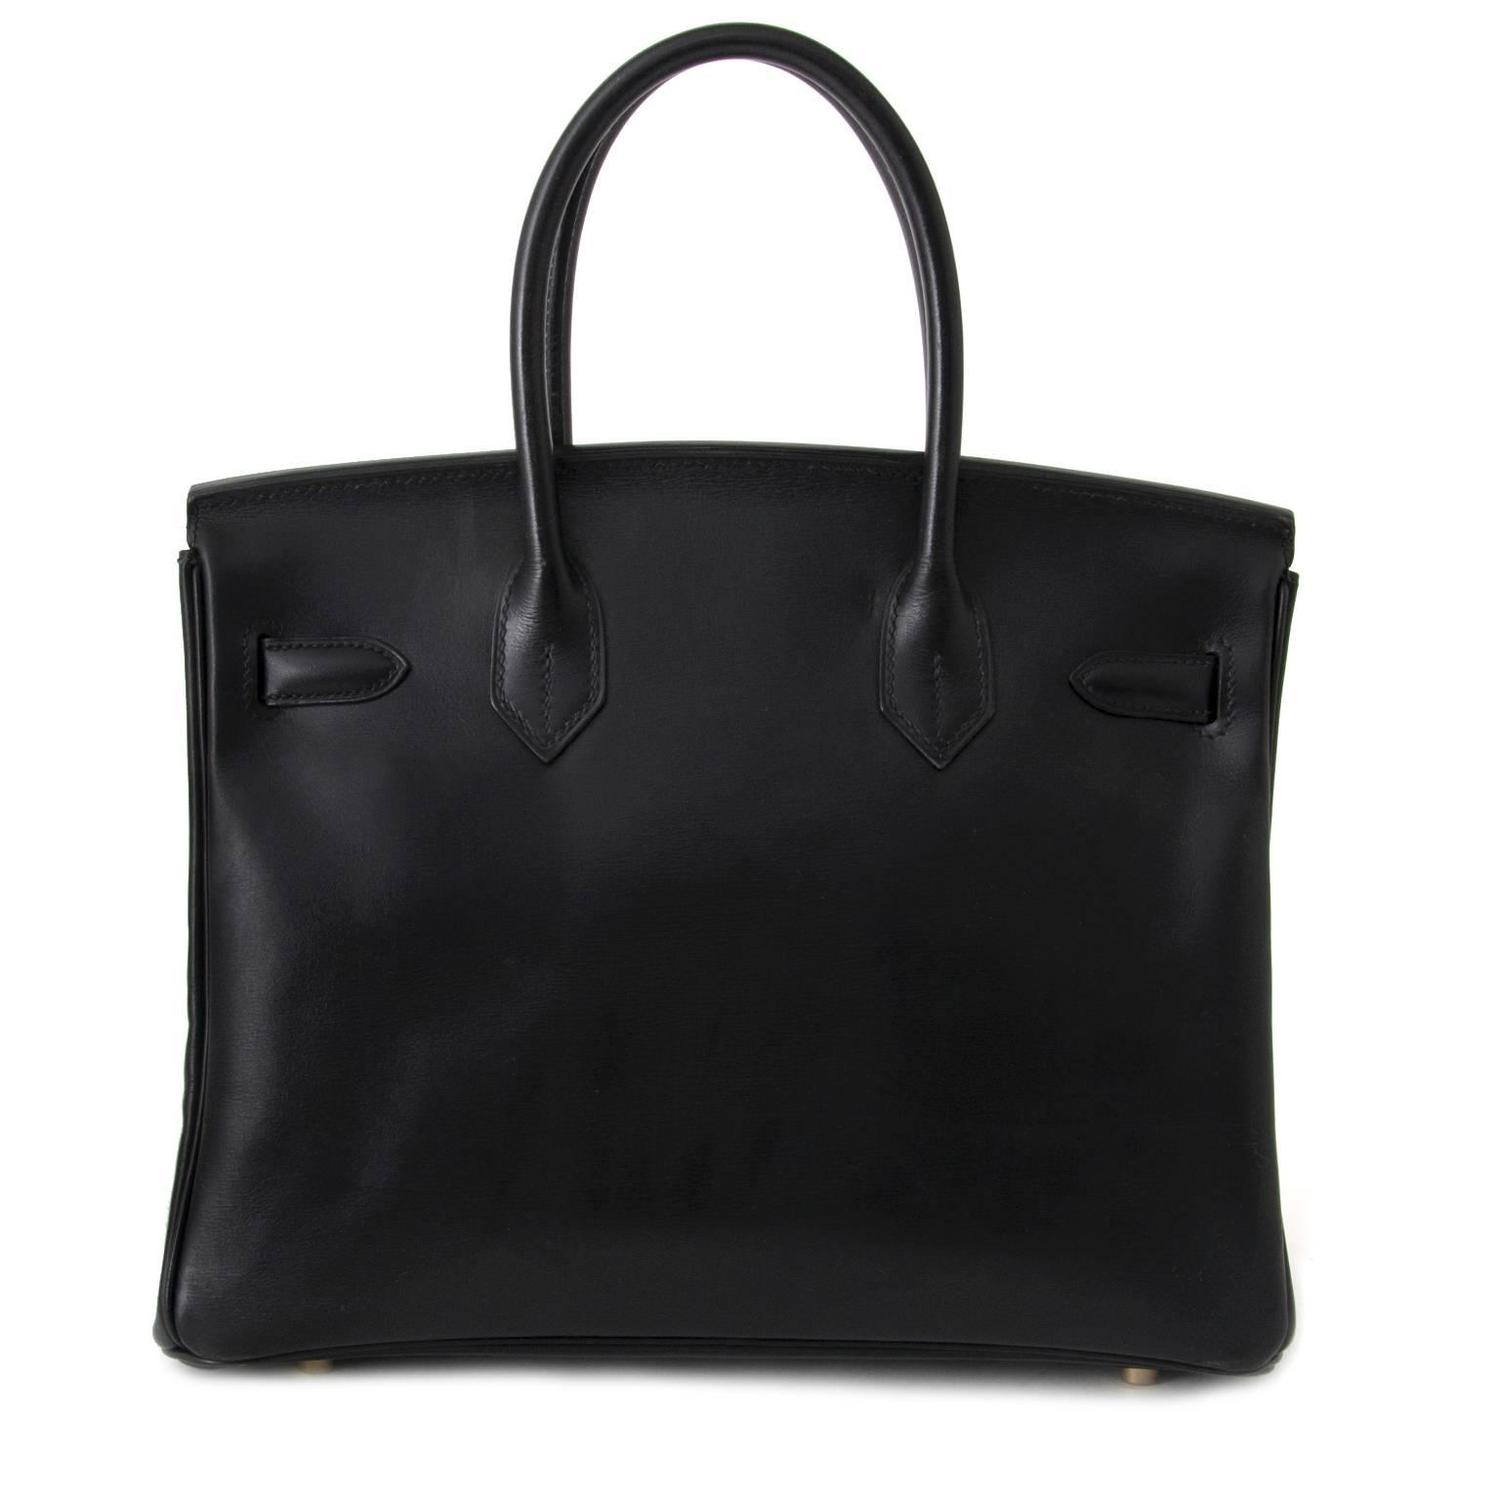 knock off purse parties - Hermes Black Birkin 30 Box Calf GHW For Sale at 1stdibs